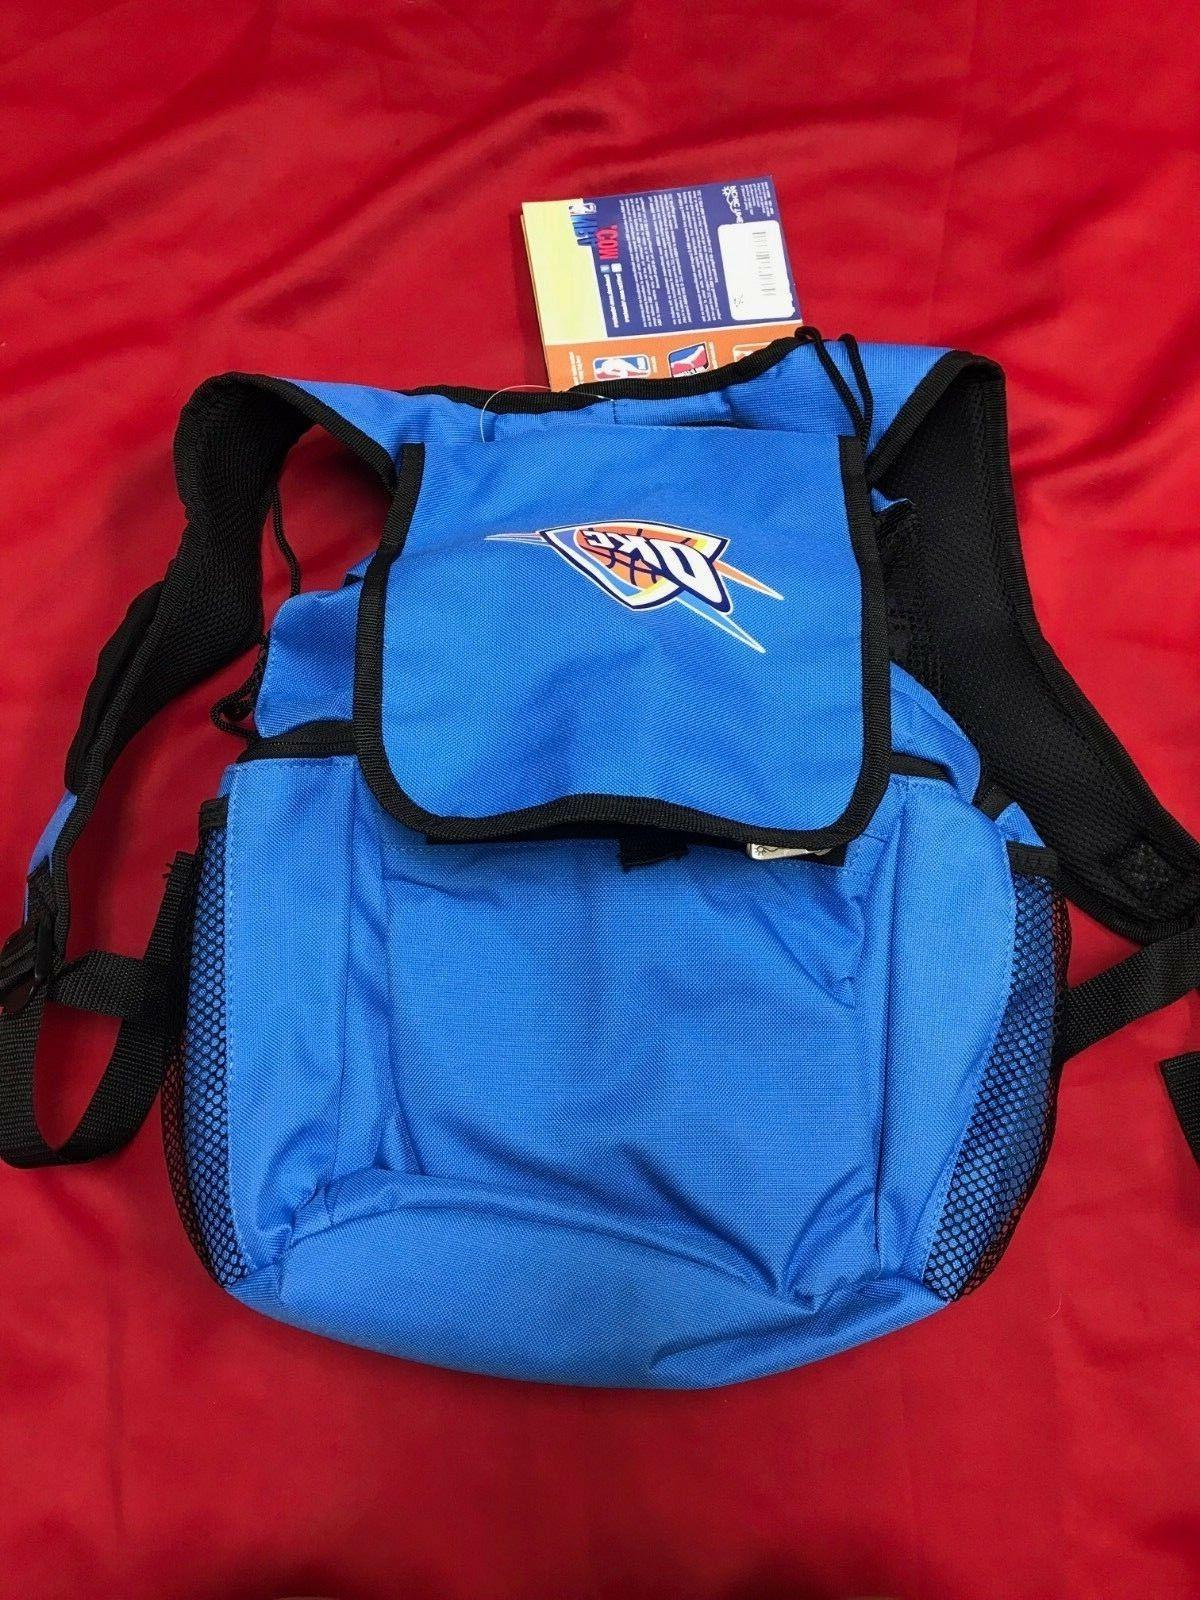 Oklahoma City Thunder-Zuma Cooler Backpack by Picnic Time Bl